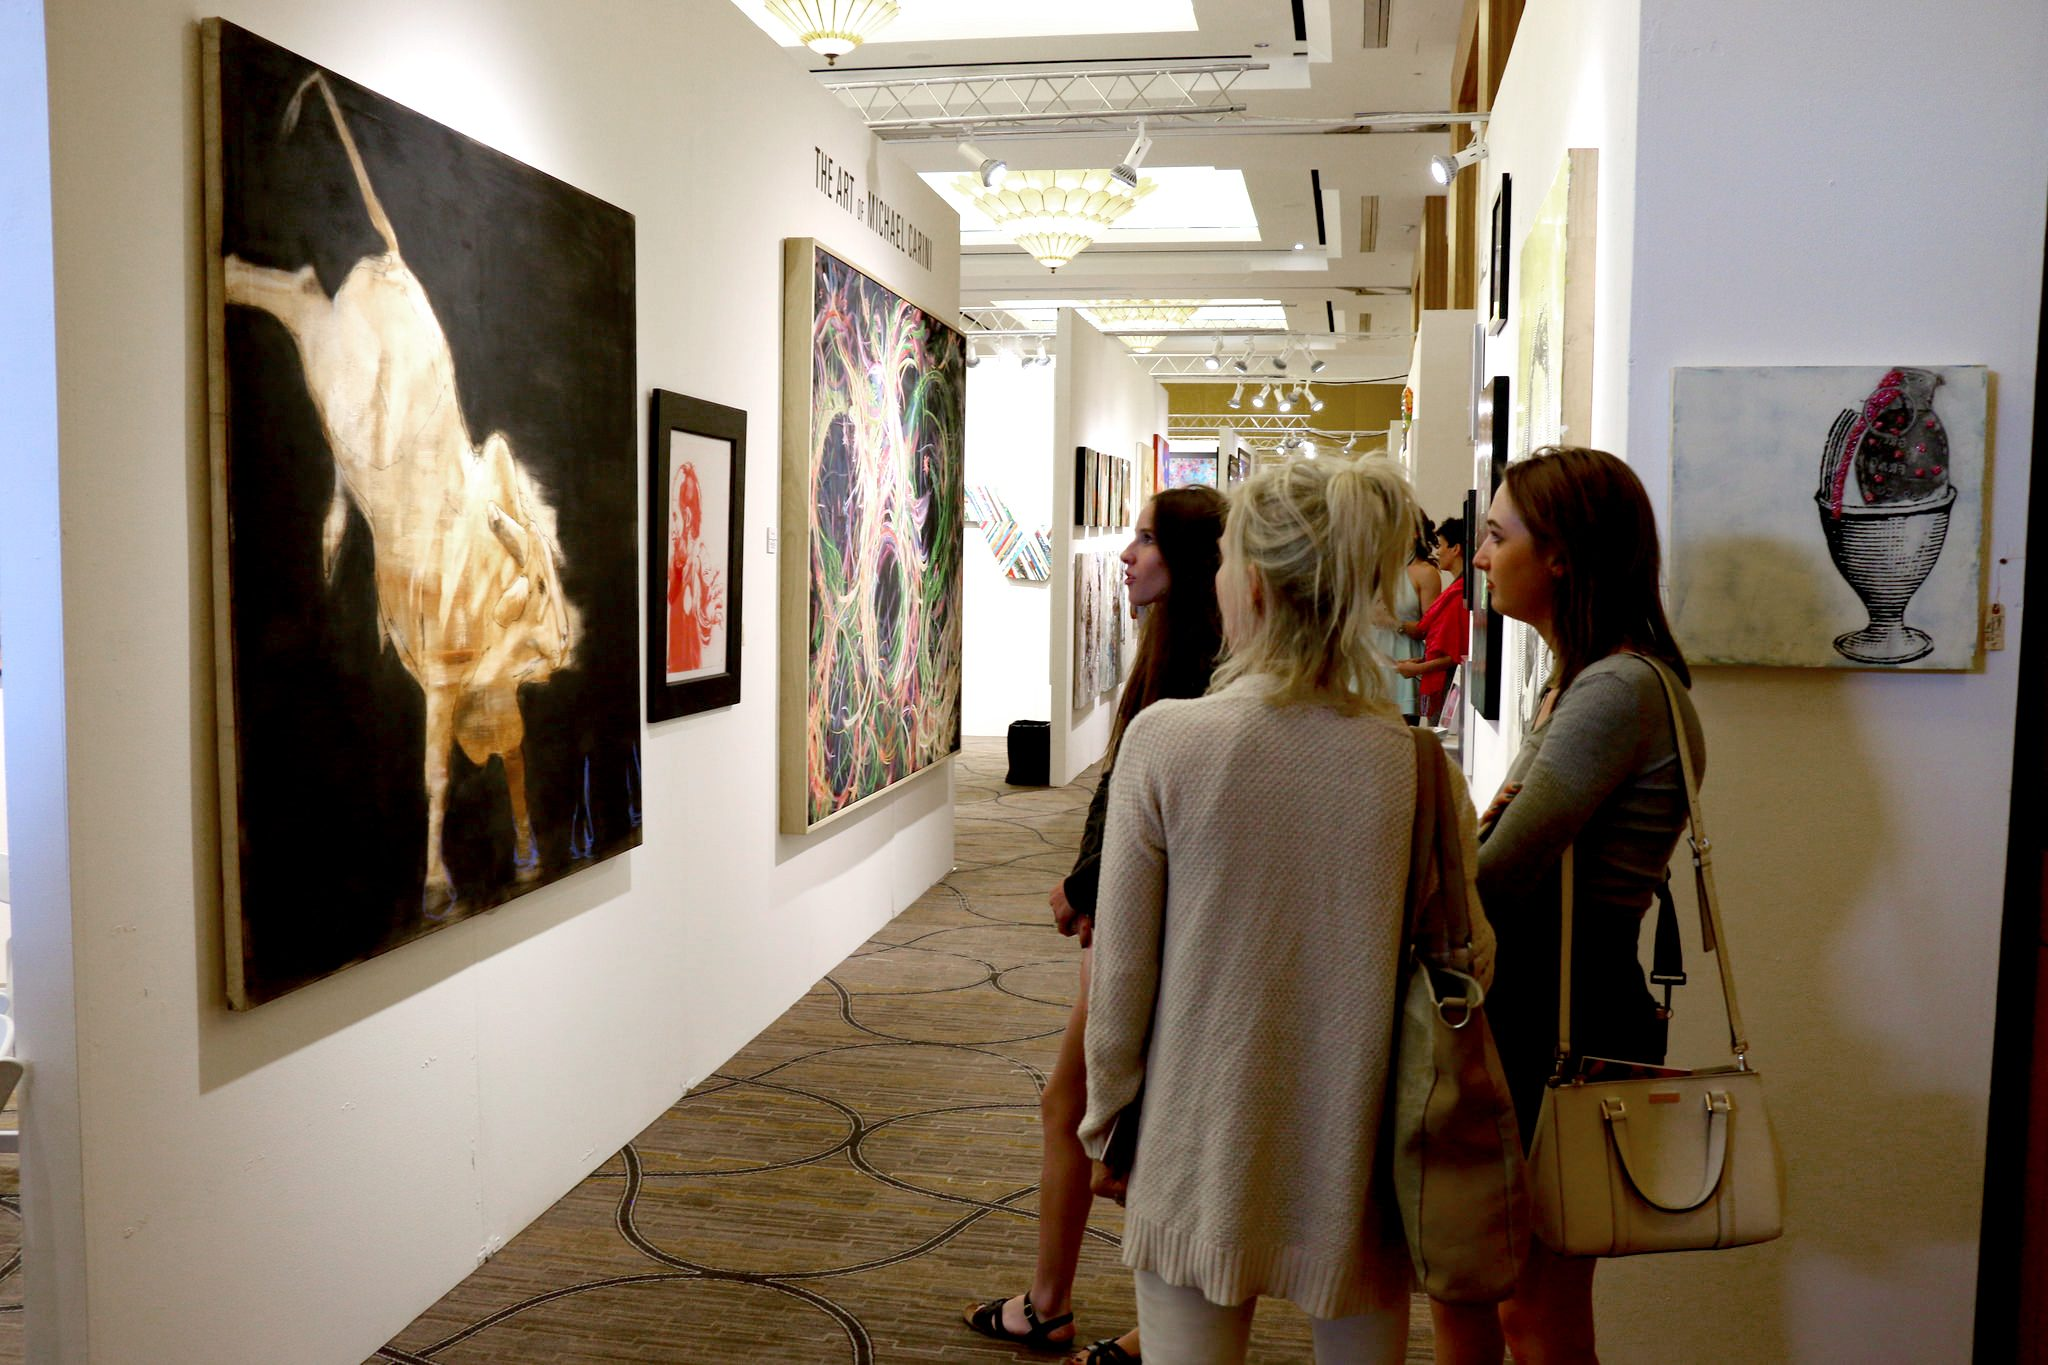 Attendees view paintings by Michael Dowling.